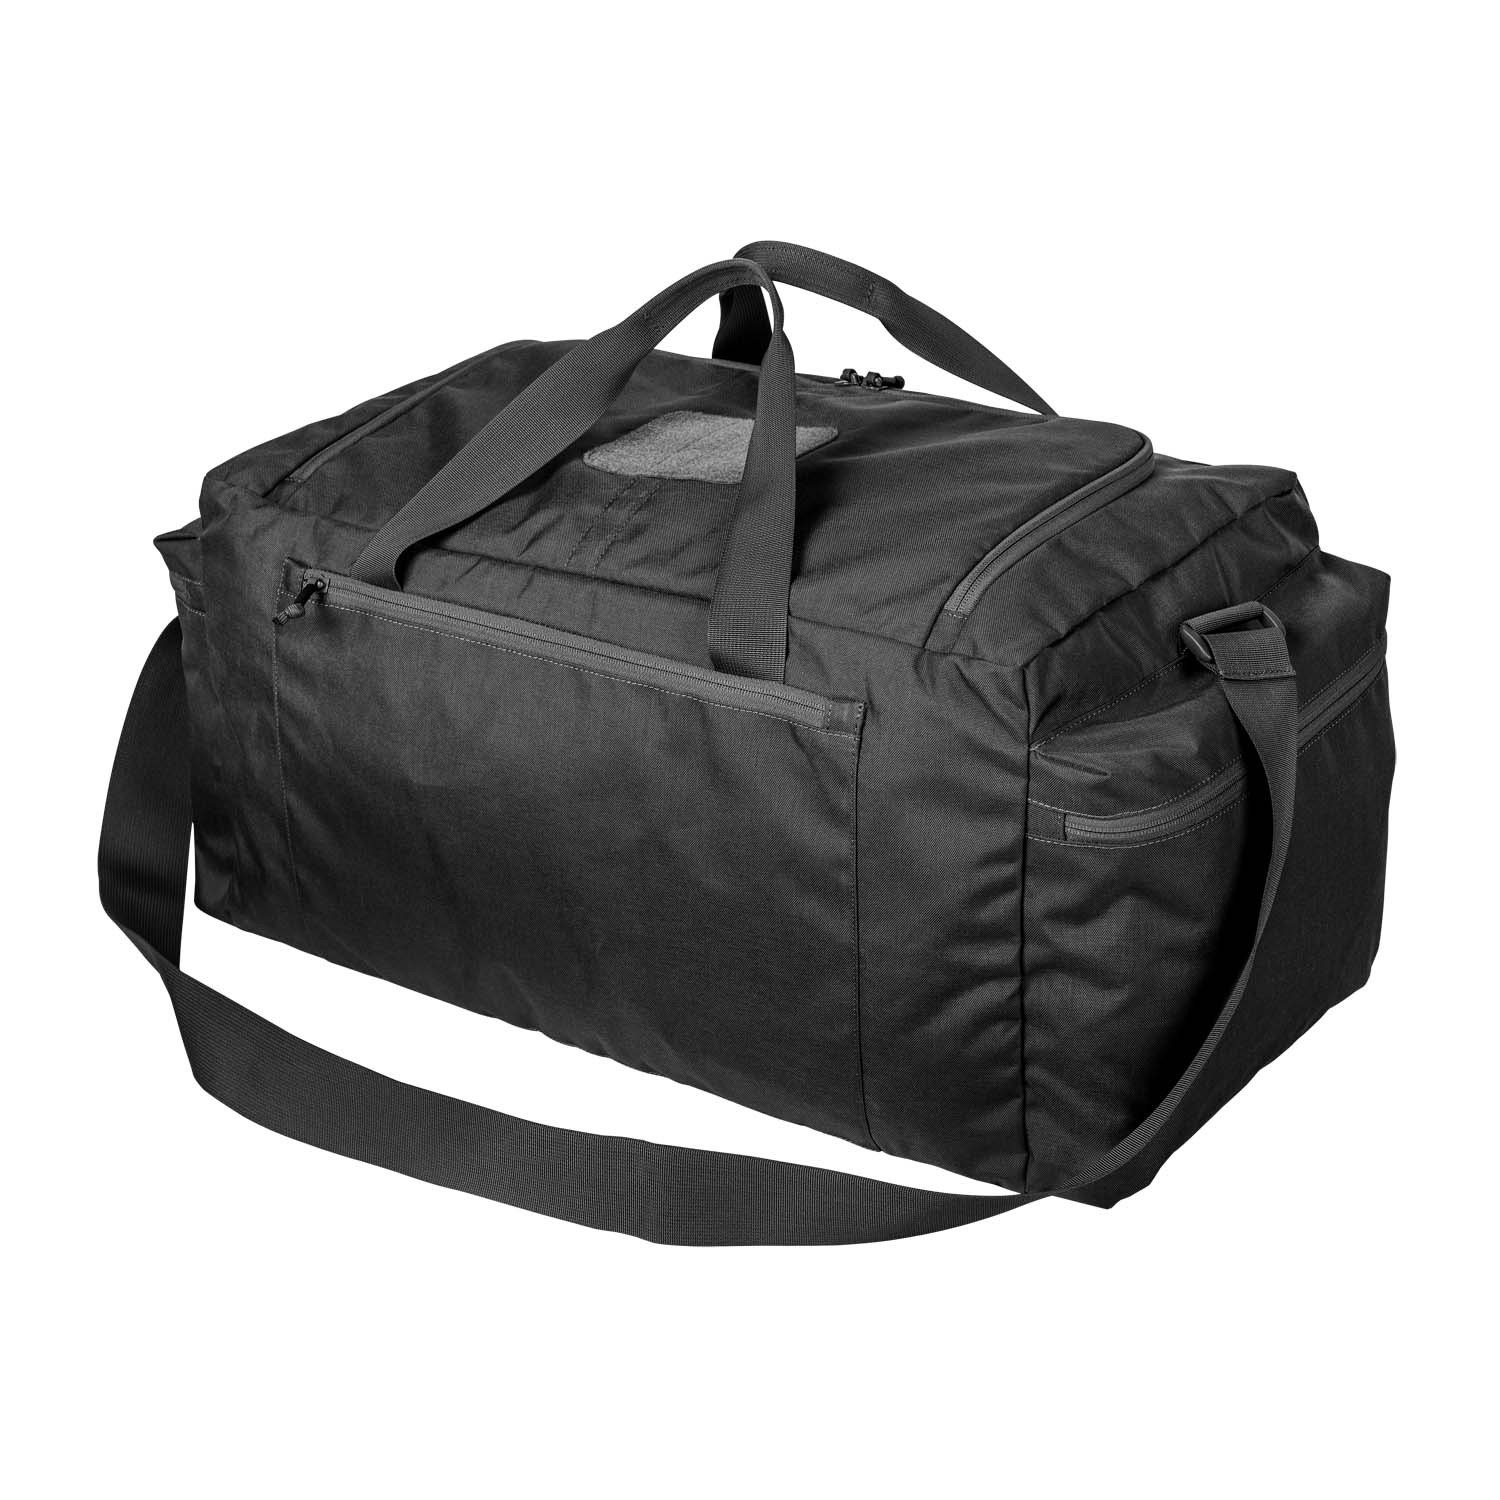 картинка Сумка URBAN TRAINING BAG от магазина av-tactical